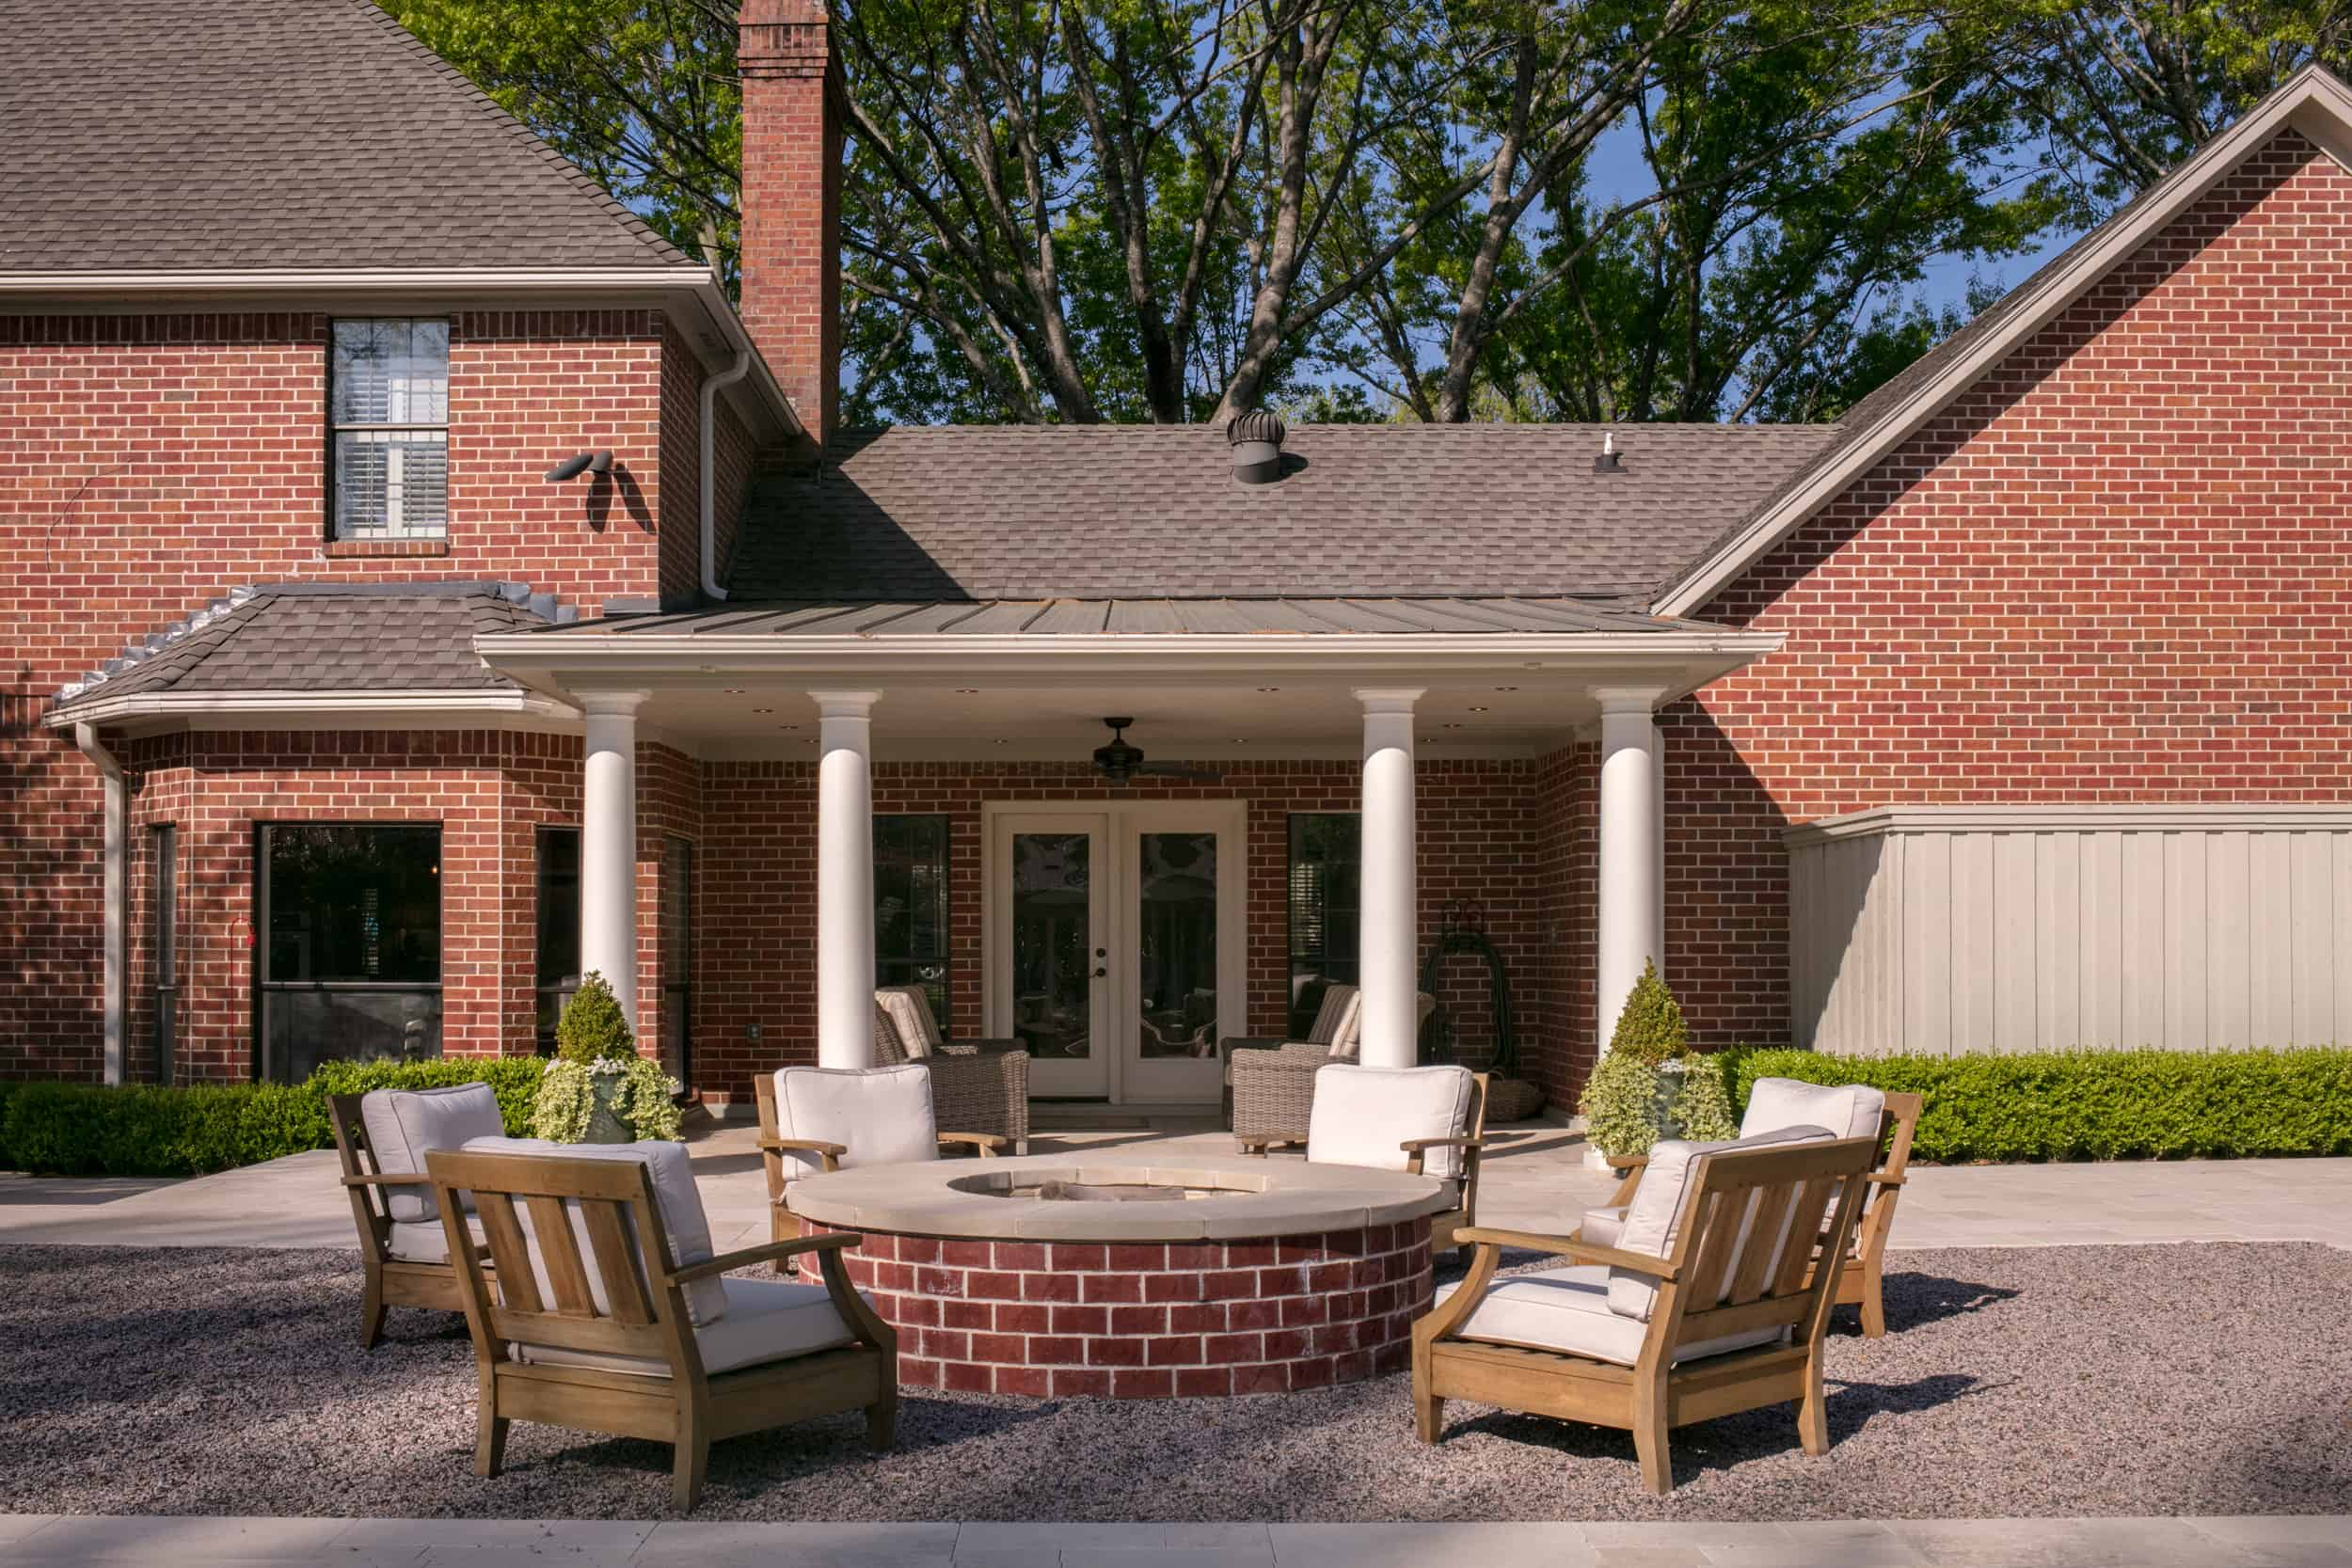 Brick firepit with limestone coping and teak restoration hardware chairs in gravel area